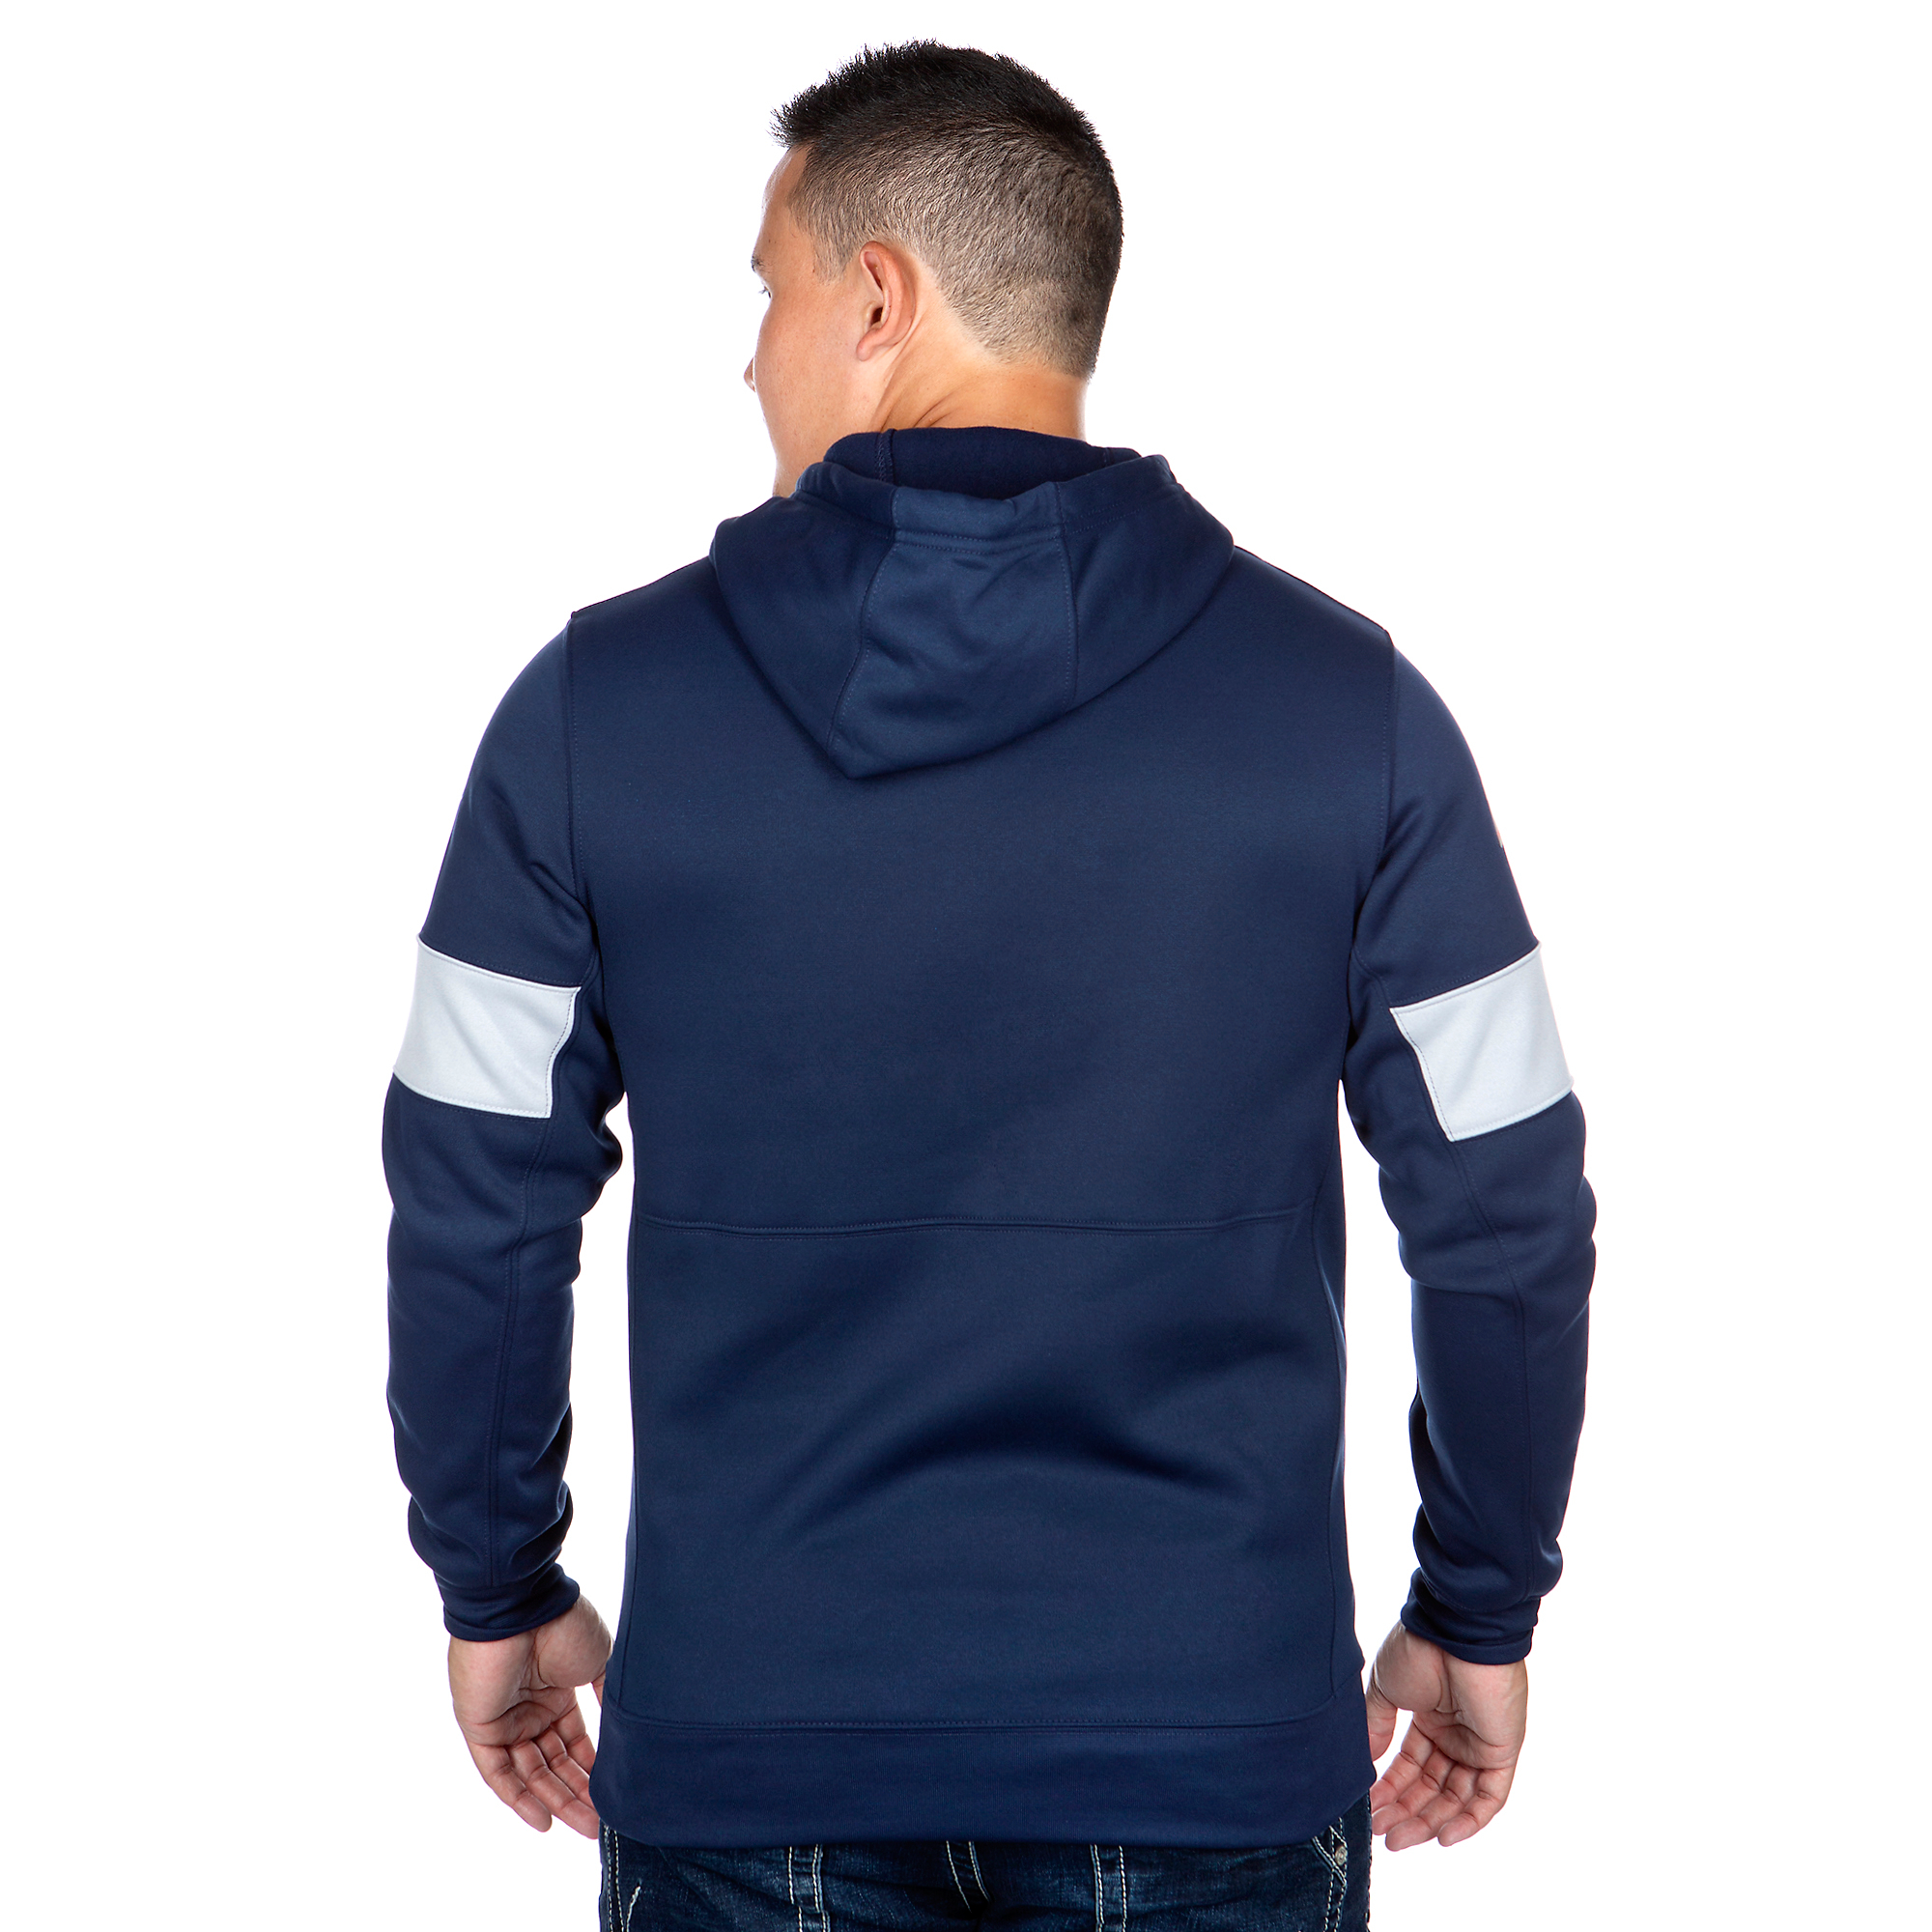 online store 5abdd a405b Dallas Cowboys Nike Mens Therma Pullover Hoody | Fans United